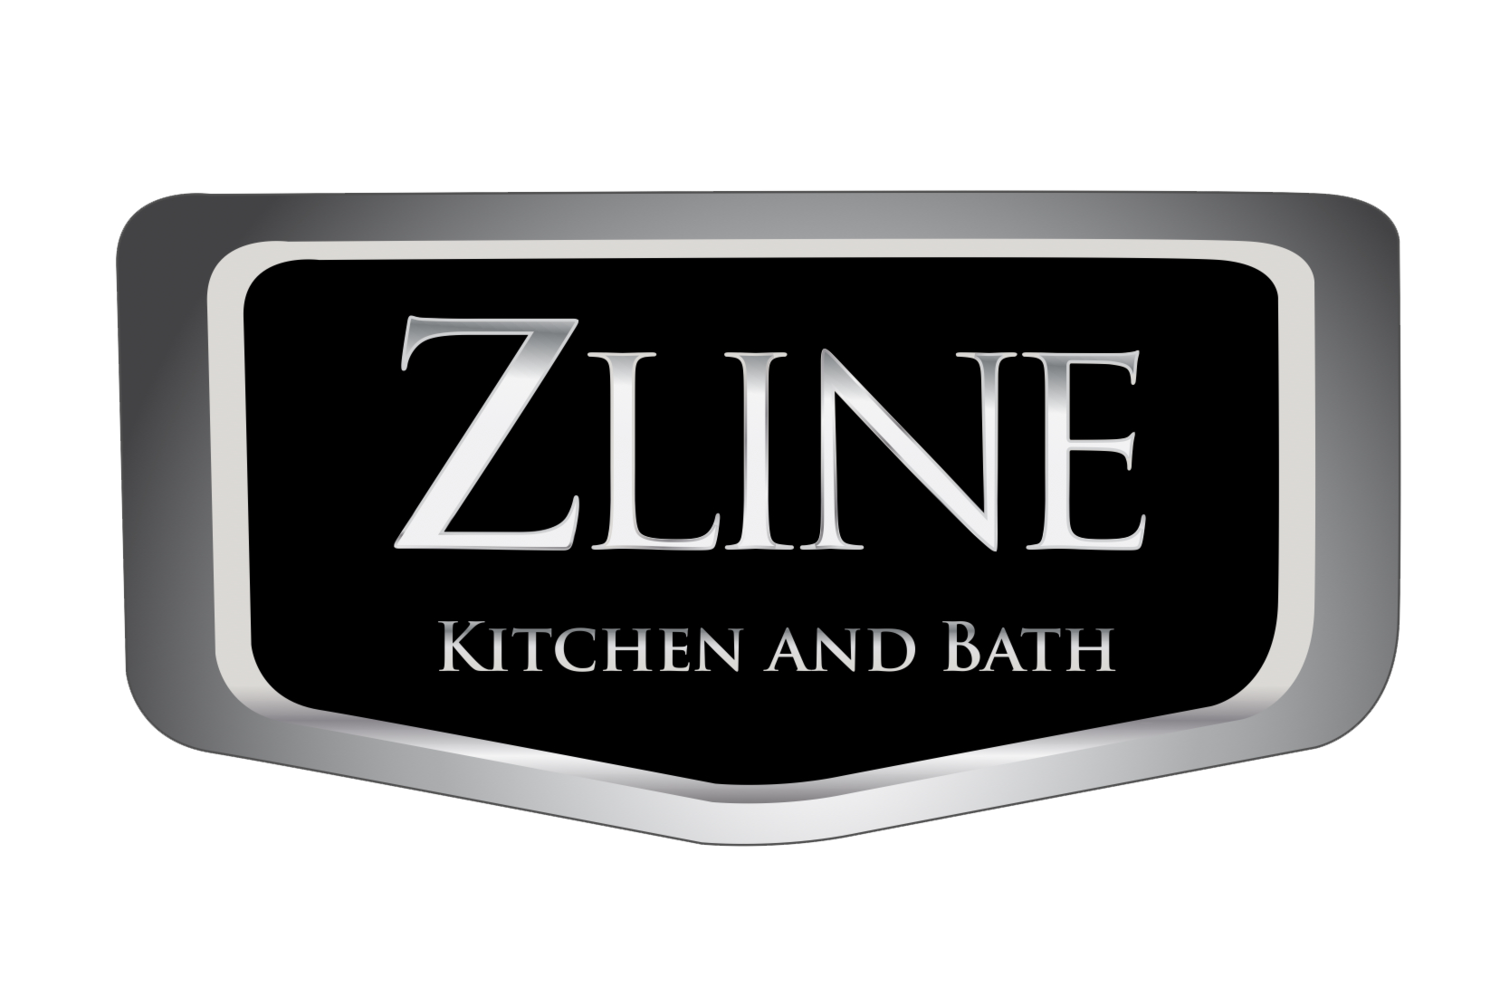 ZLINE Kitchen